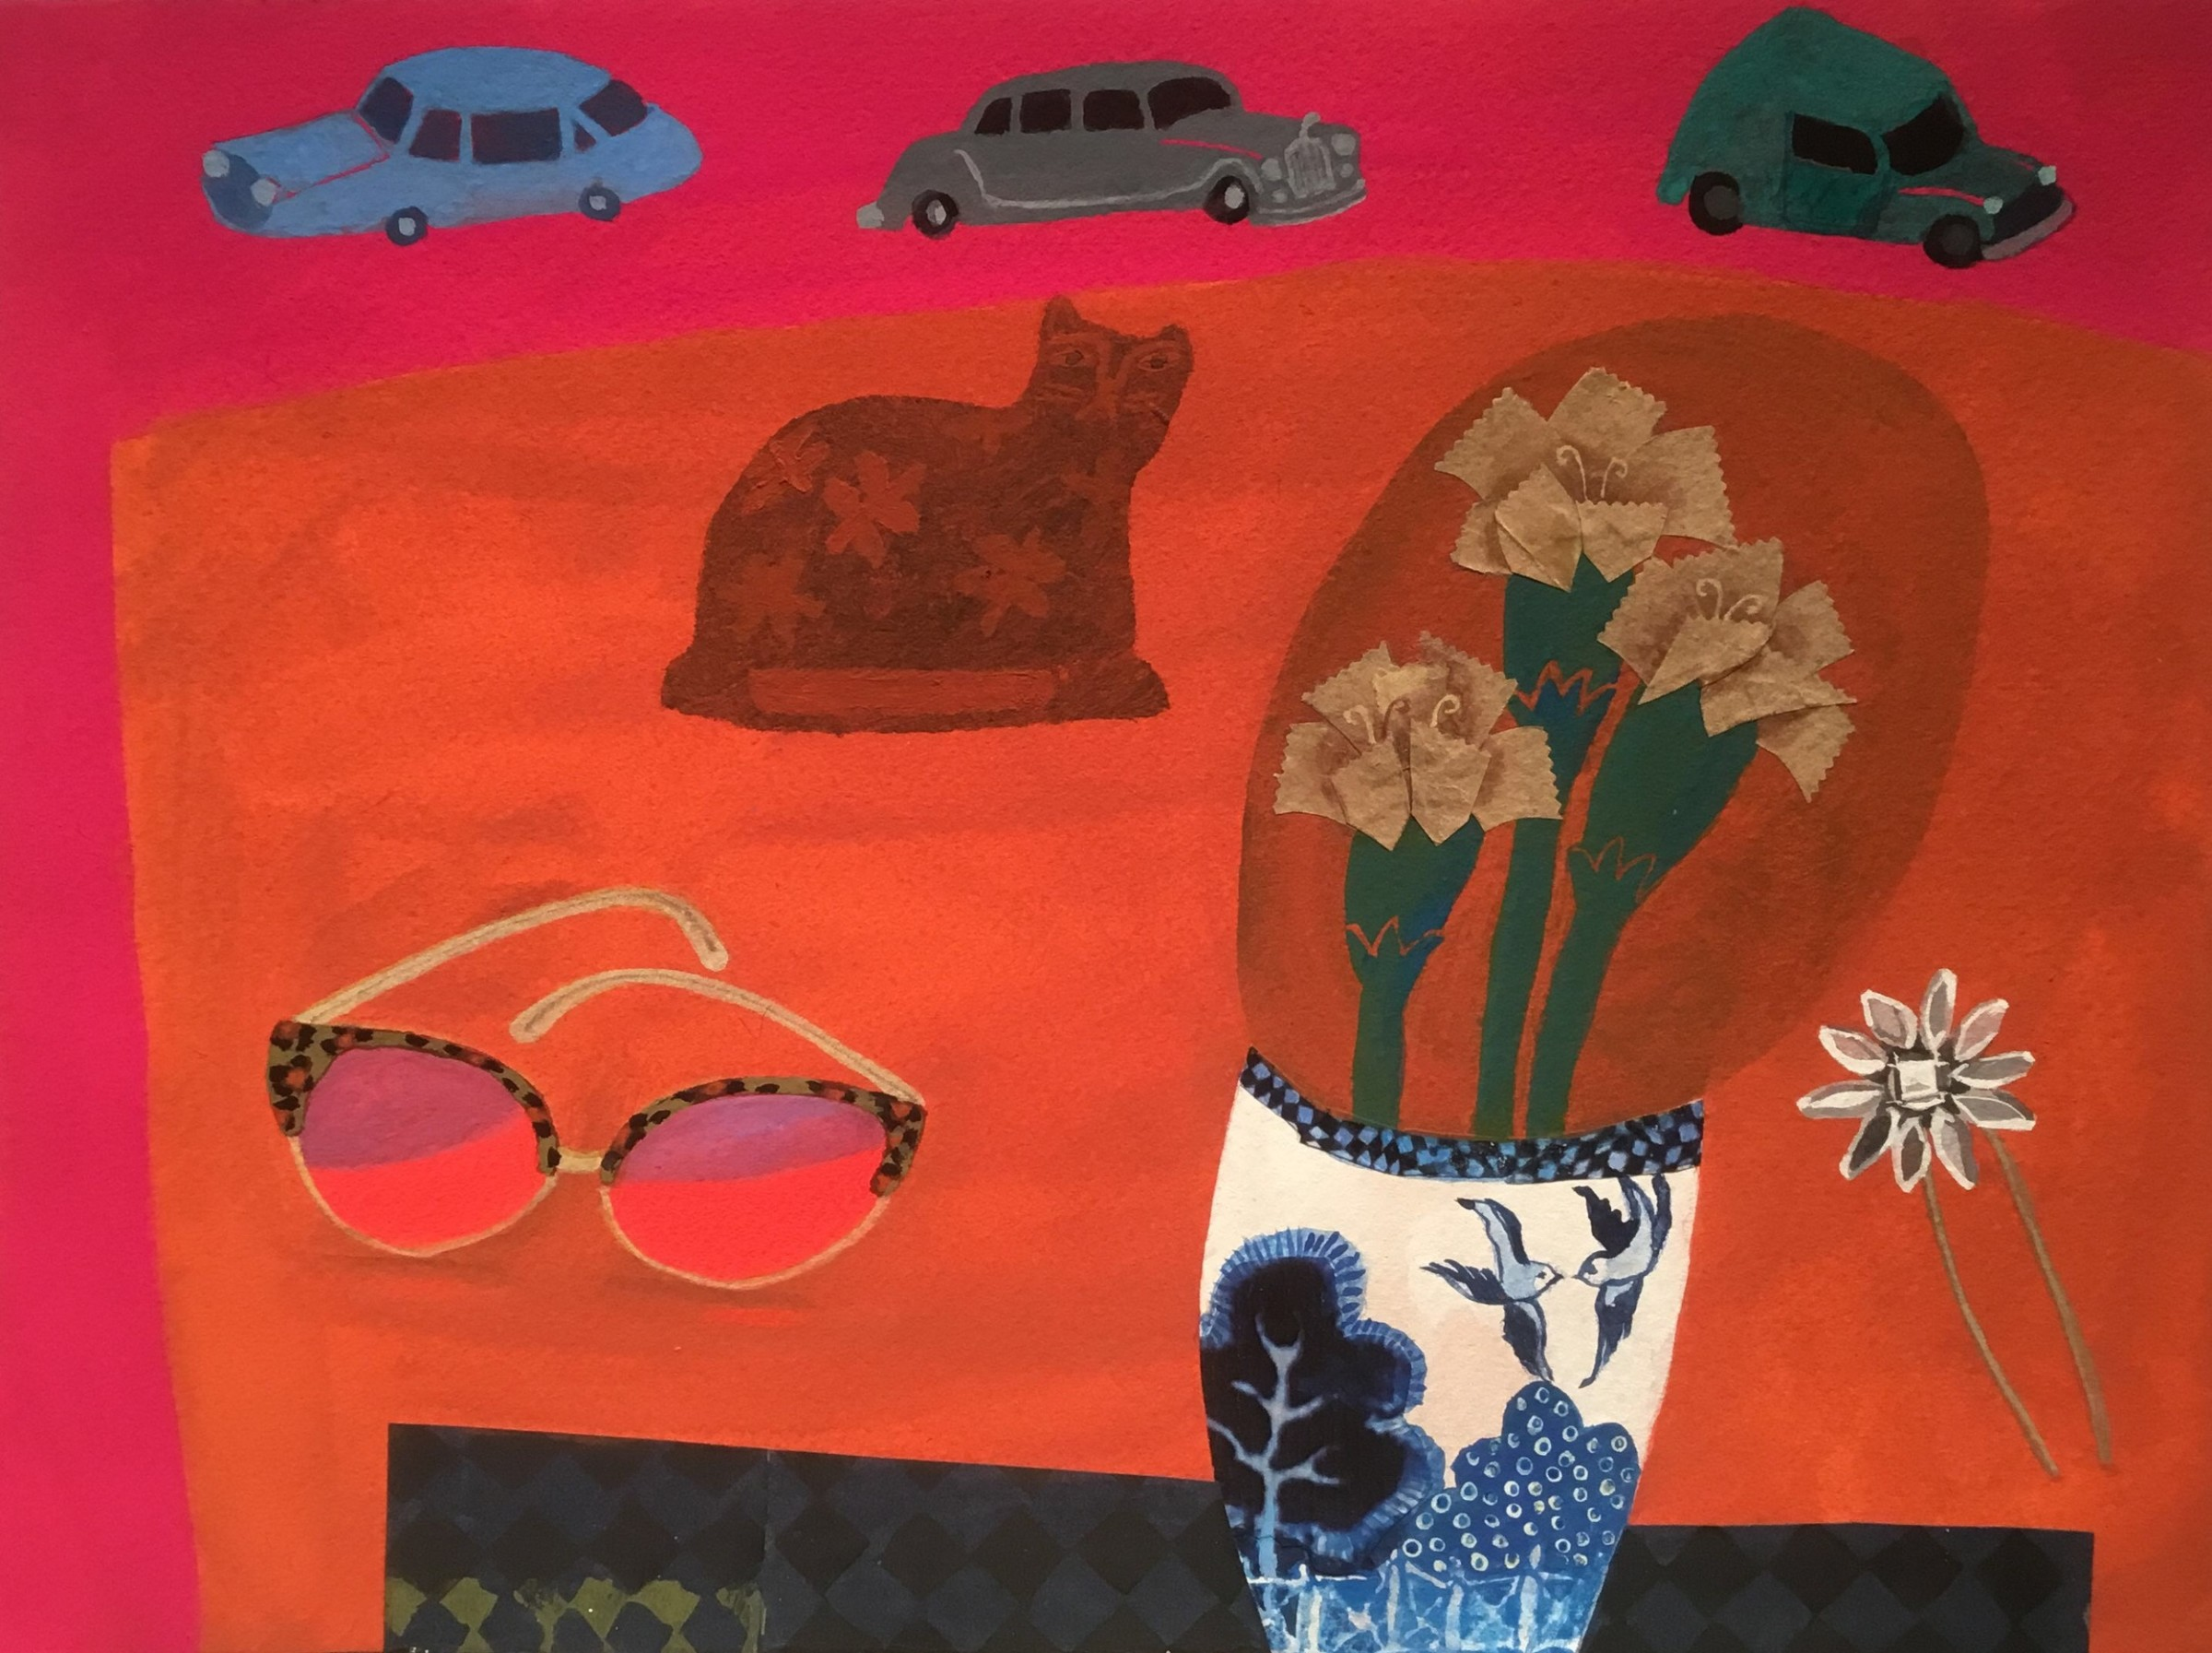 """<span class=""""link fancybox-details-link""""><a href=""""/artists/146-gertie-young/works/11131-gertie-young-red-table-with-parked-cars/"""">View Detail Page</a></span><div class=""""artist""""><span class=""""artist""""><strong>Gertie Young</strong></span></div><div class=""""title""""><em>Red Table with Parked Cars</em></div><div class=""""medium"""">watercolour, gouache & collage</div><div class=""""dimensions"""">35x43cm</div><div class=""""price"""">£360.00</div>"""